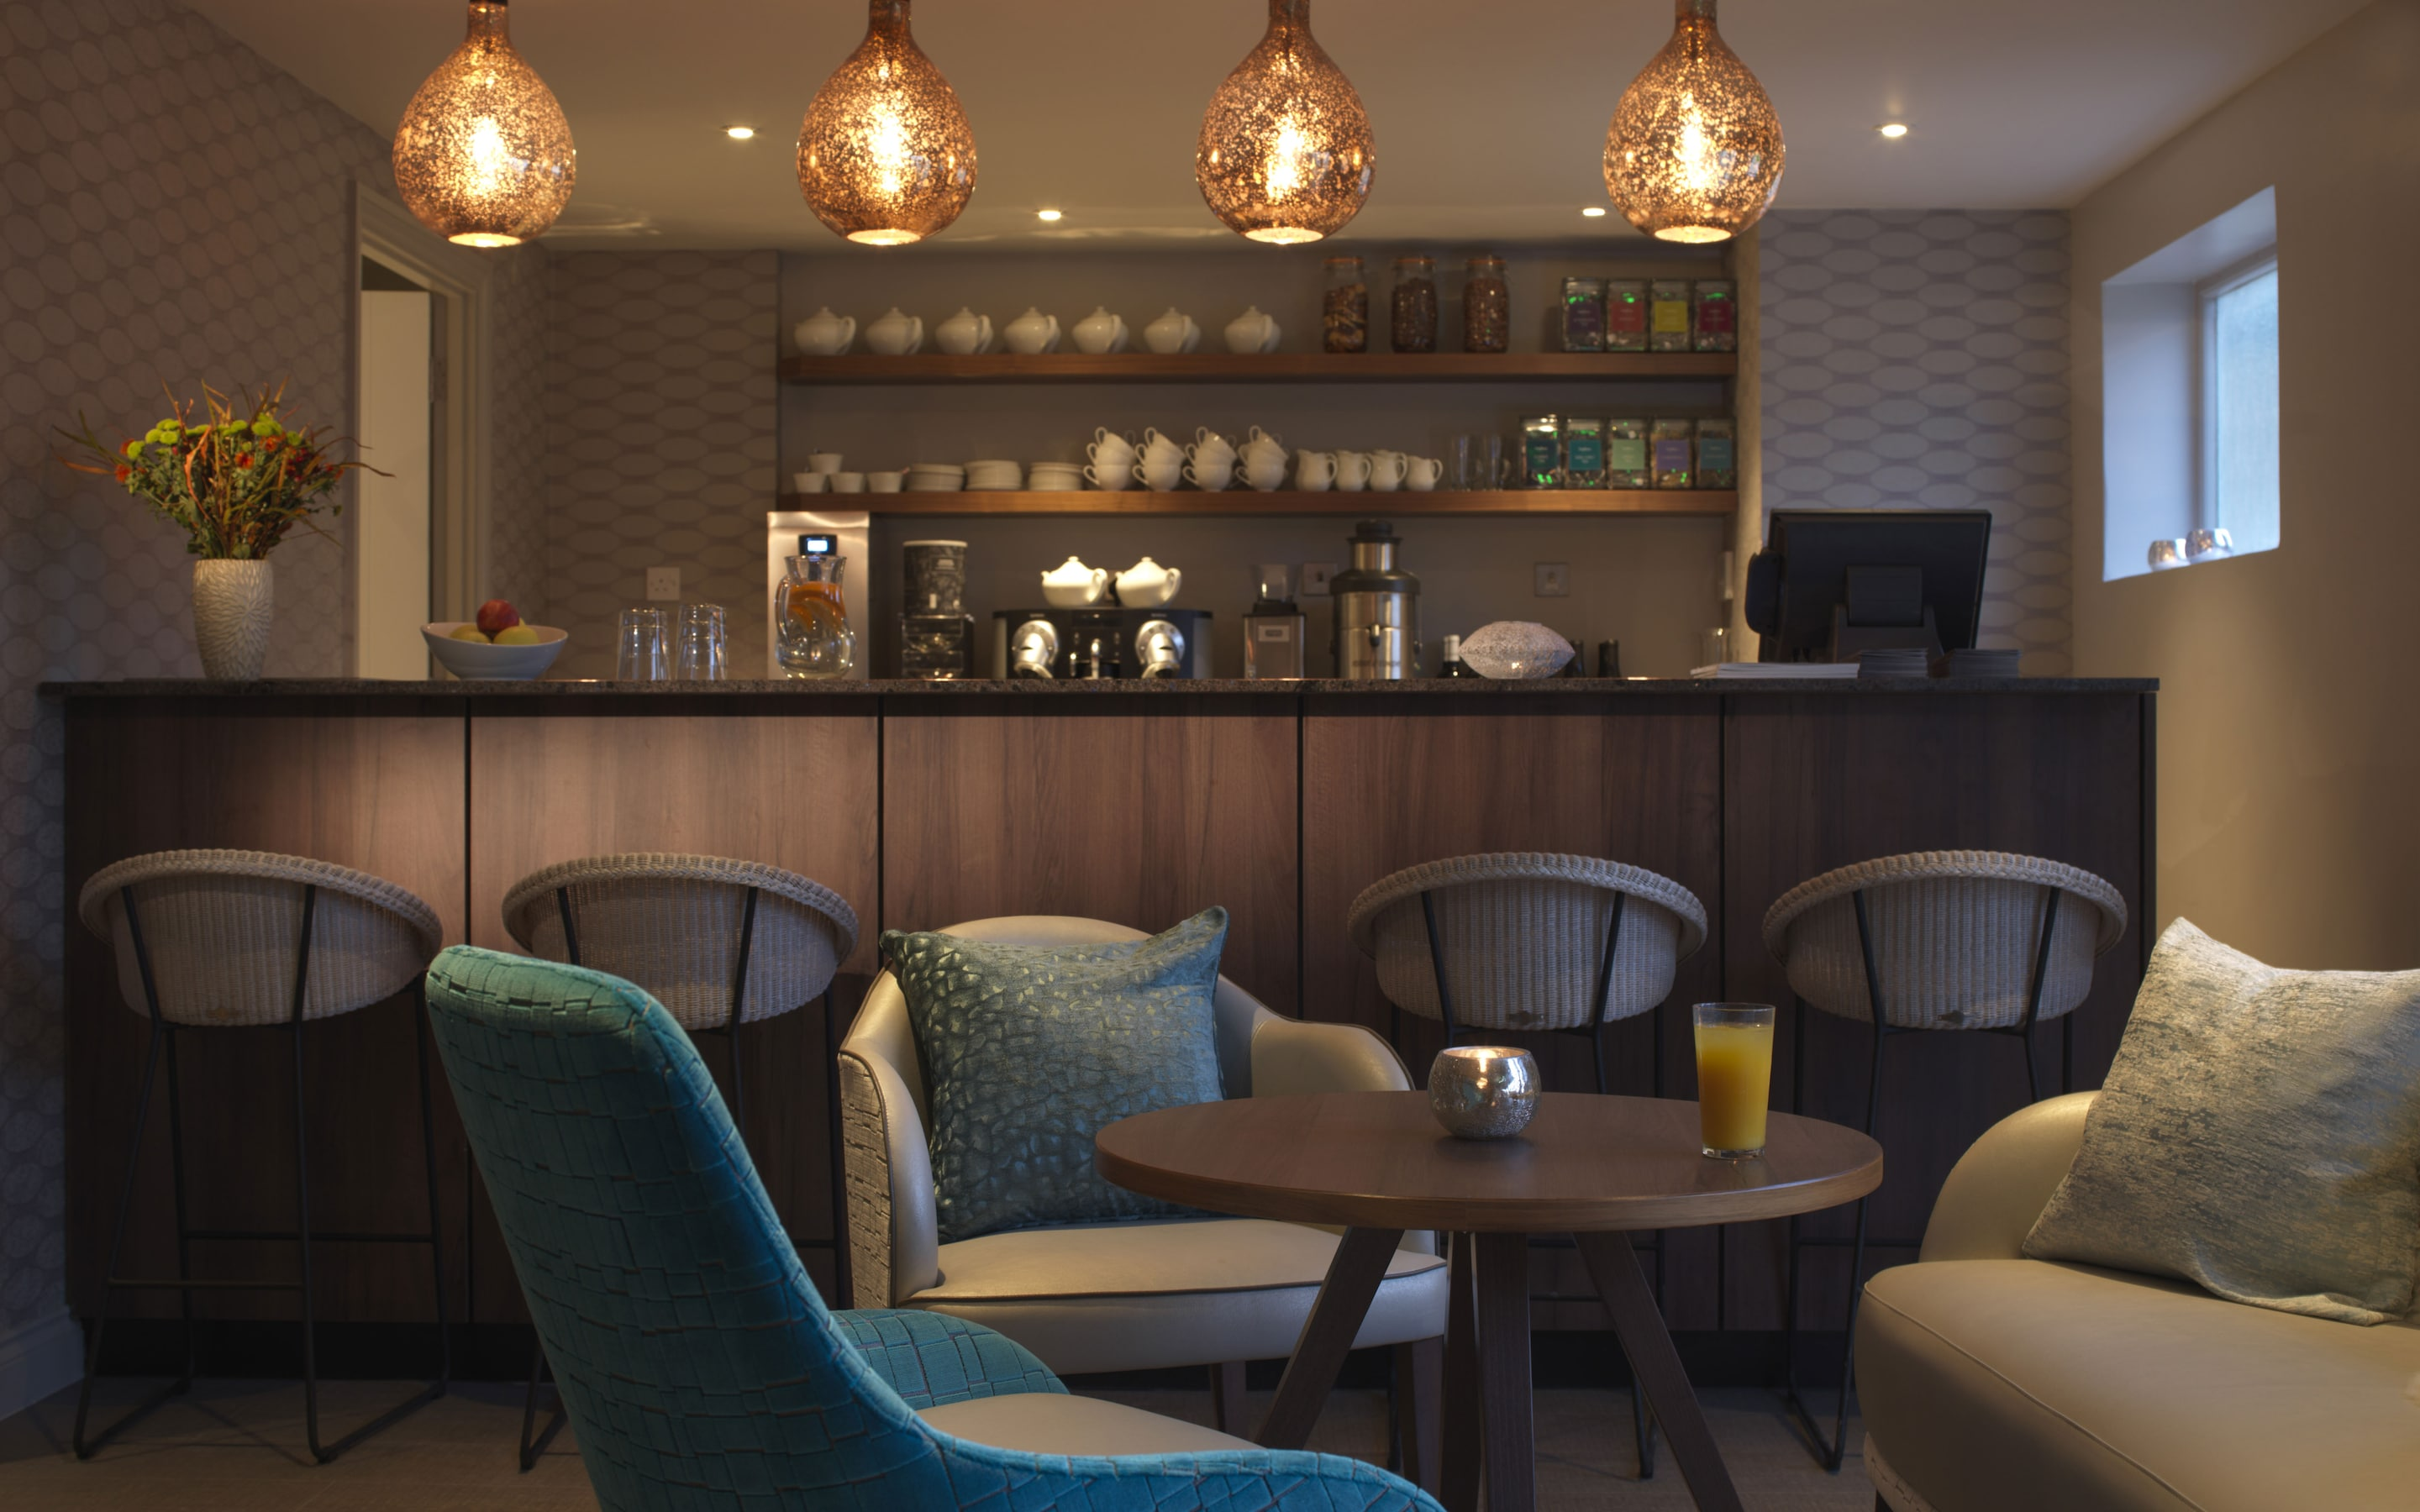 Spa Struck Lygon Arms Provides The Perfect Antidote For New Year Telegraph Travel